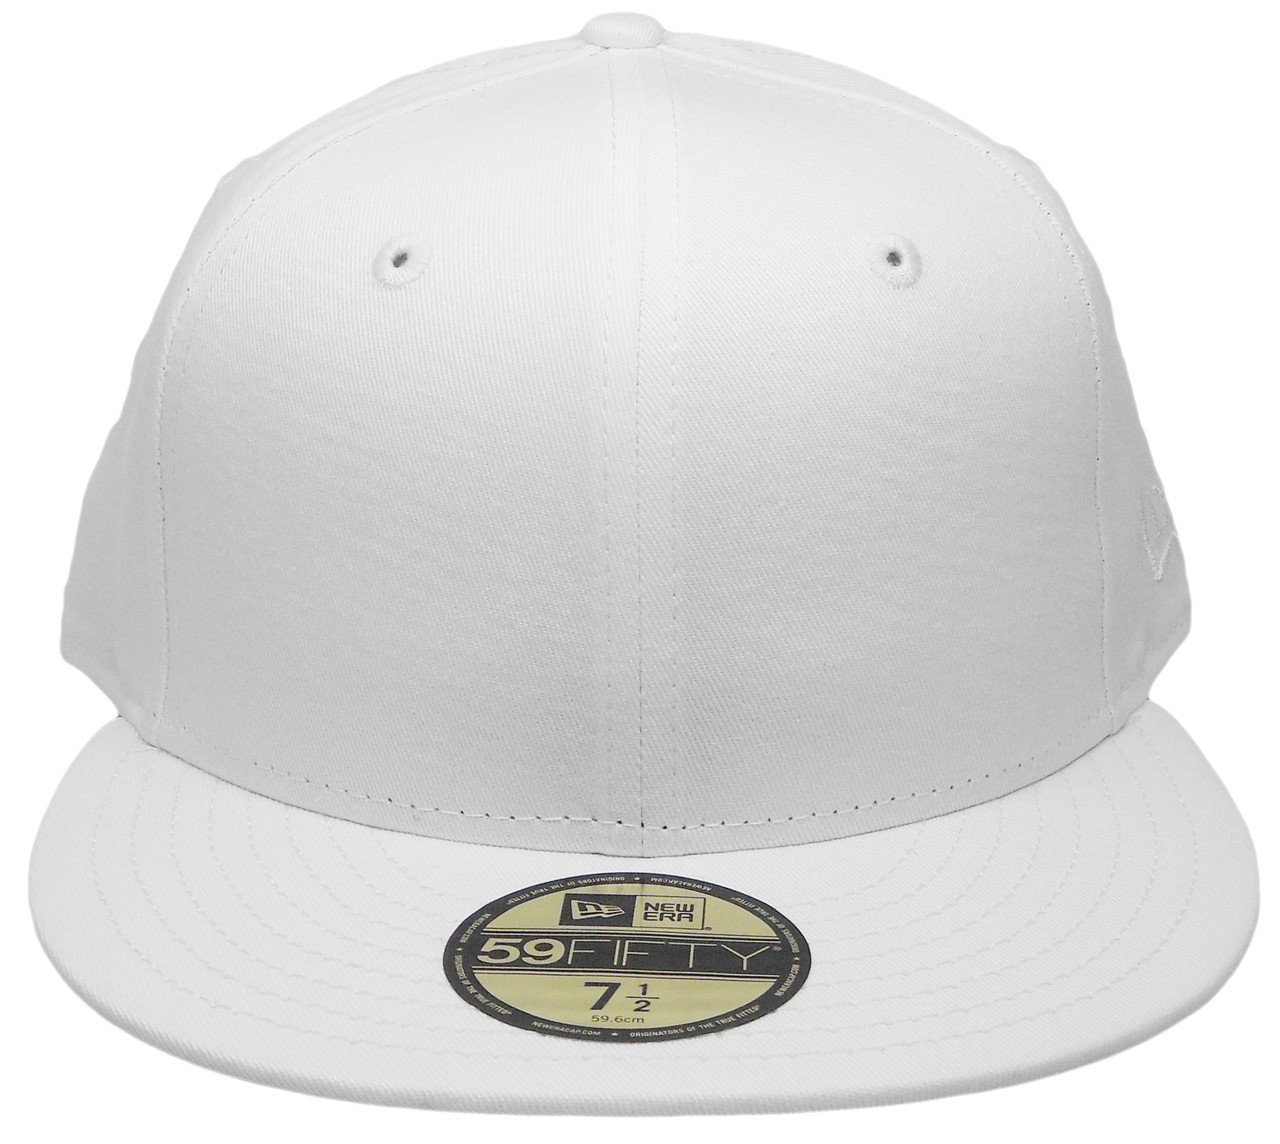 Plain Blank New Era Custom-made 59Fifty Fitted Hat - All White -  ECapsUnlimited.com 3152d3eaa7e